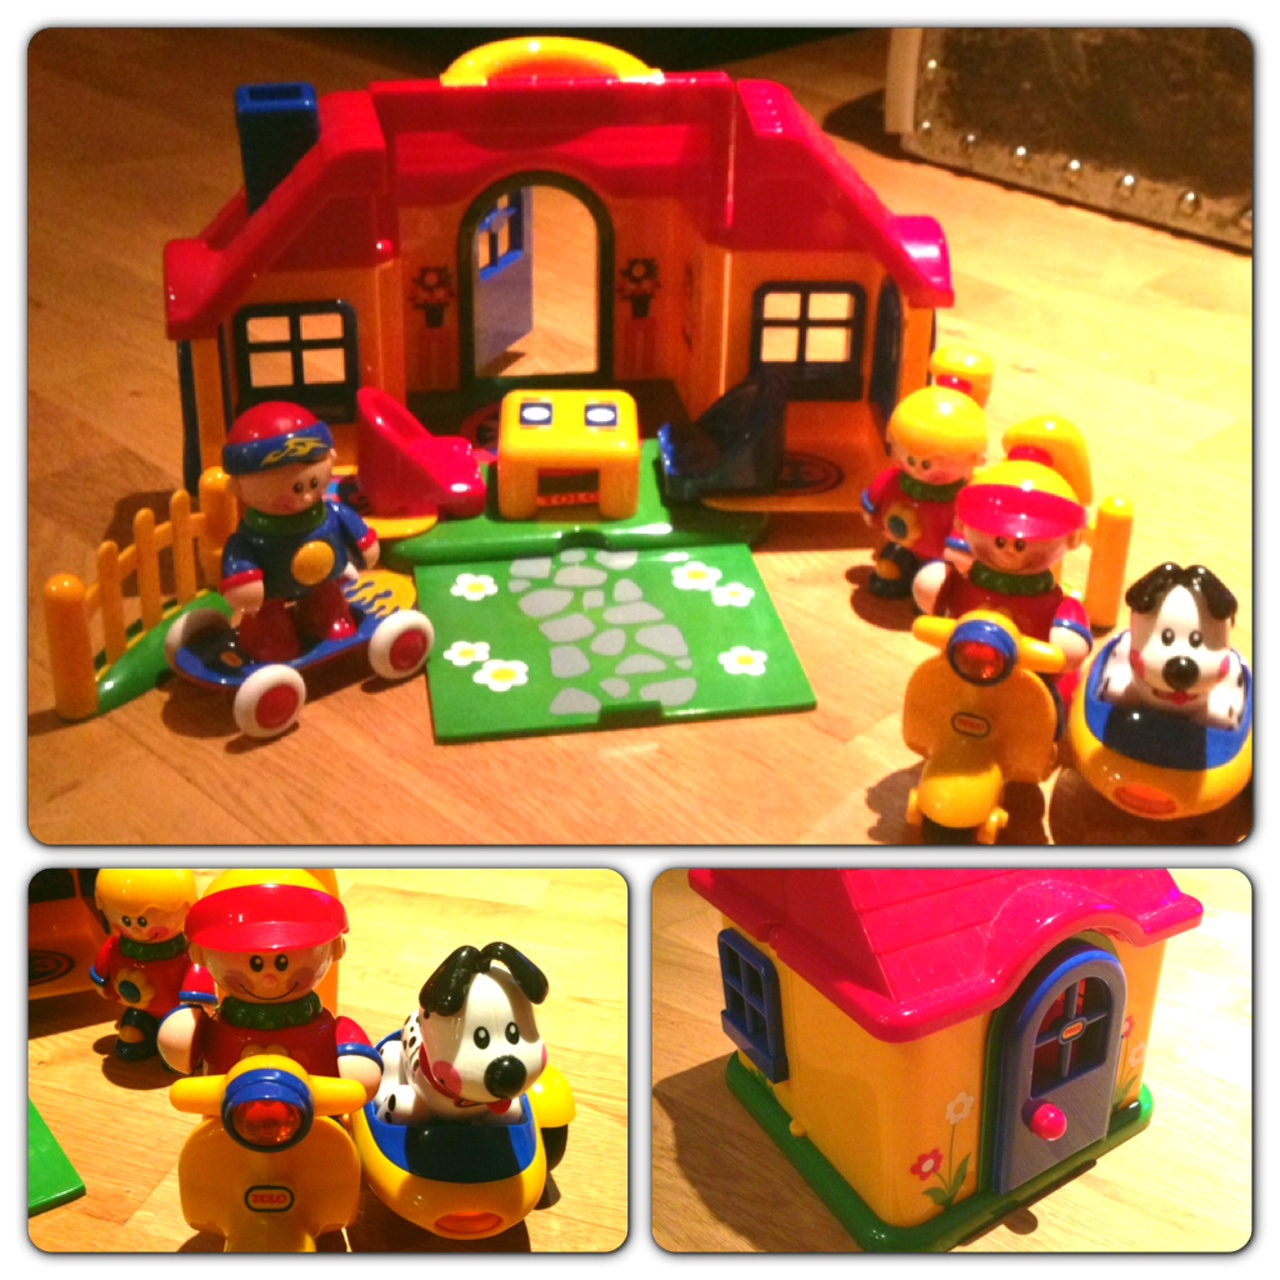 My 14-month old loves her Tolo First Friends house, characters and doggie. Santa might bring her some more things from the Tolo series this Christmas!